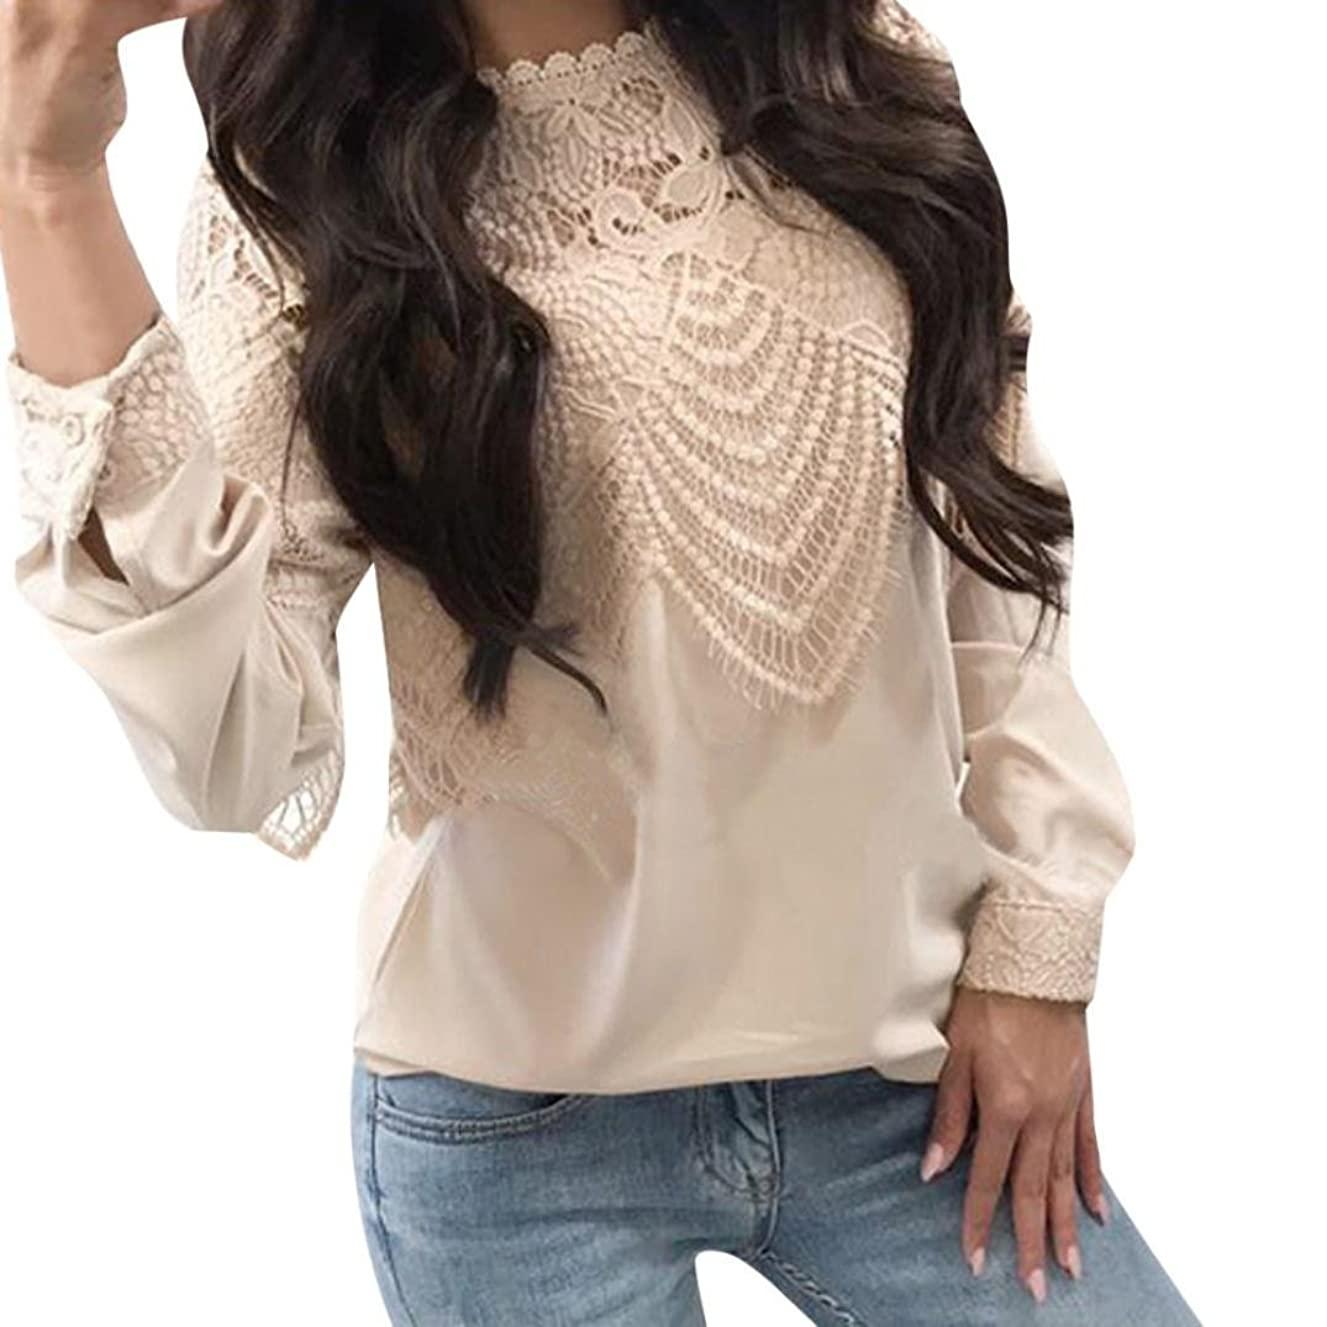 TIFENNY Women's Long Sleeve Tops Ladies Casual Clothes Lace Patchwork T-Shirt O Neck Blouse